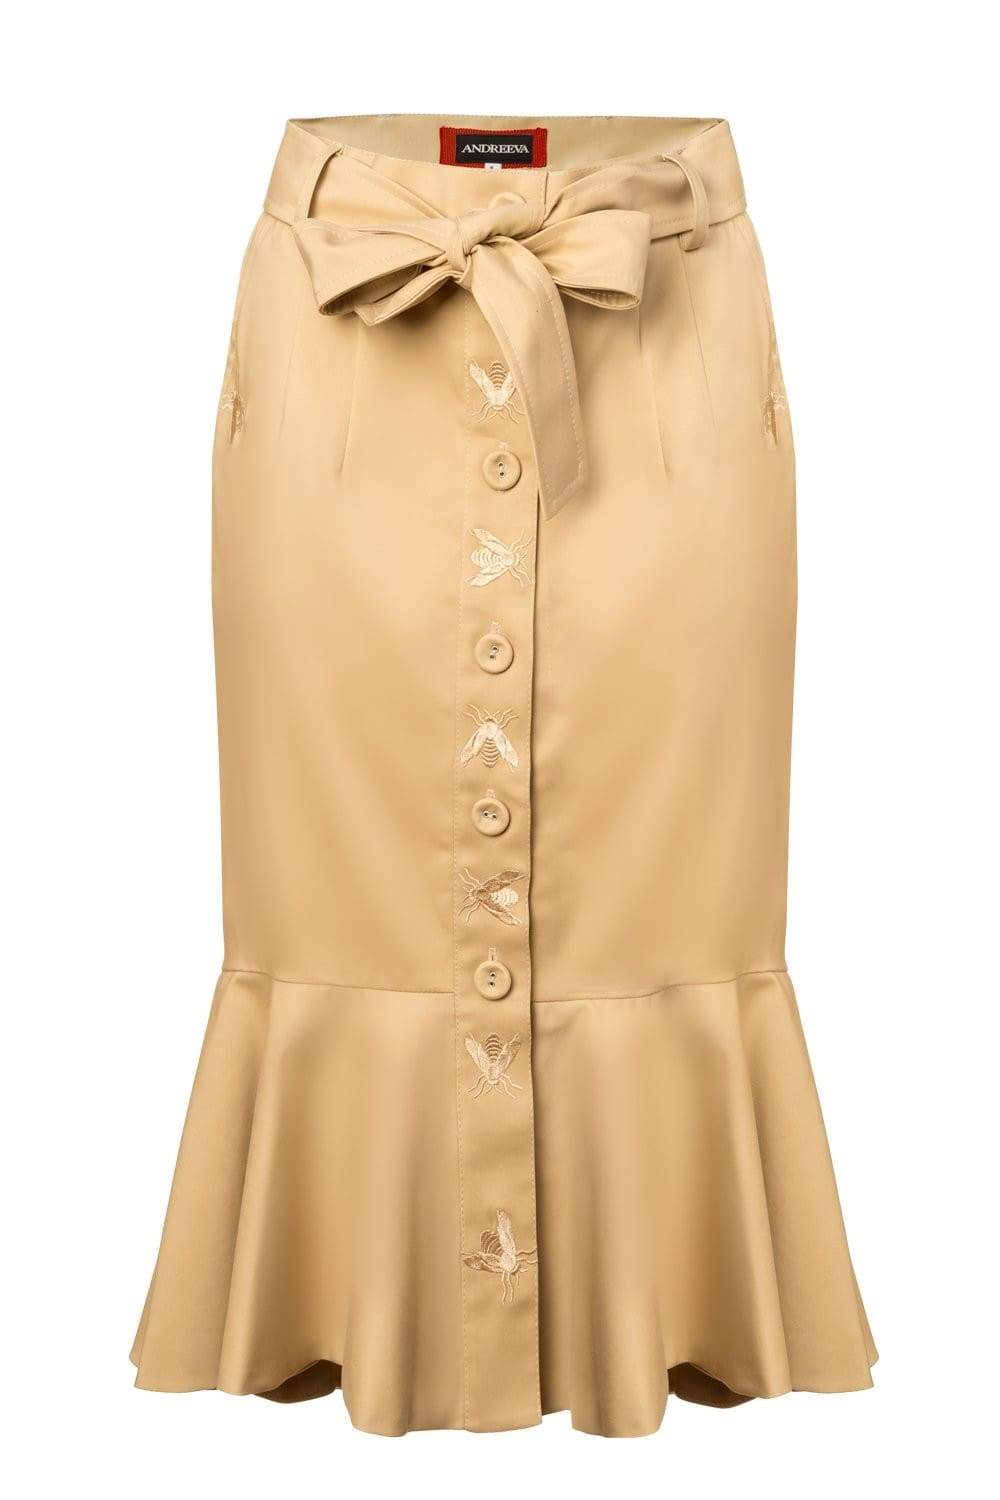 Beige Pion Cotton Skirt With Embroidery - skirt